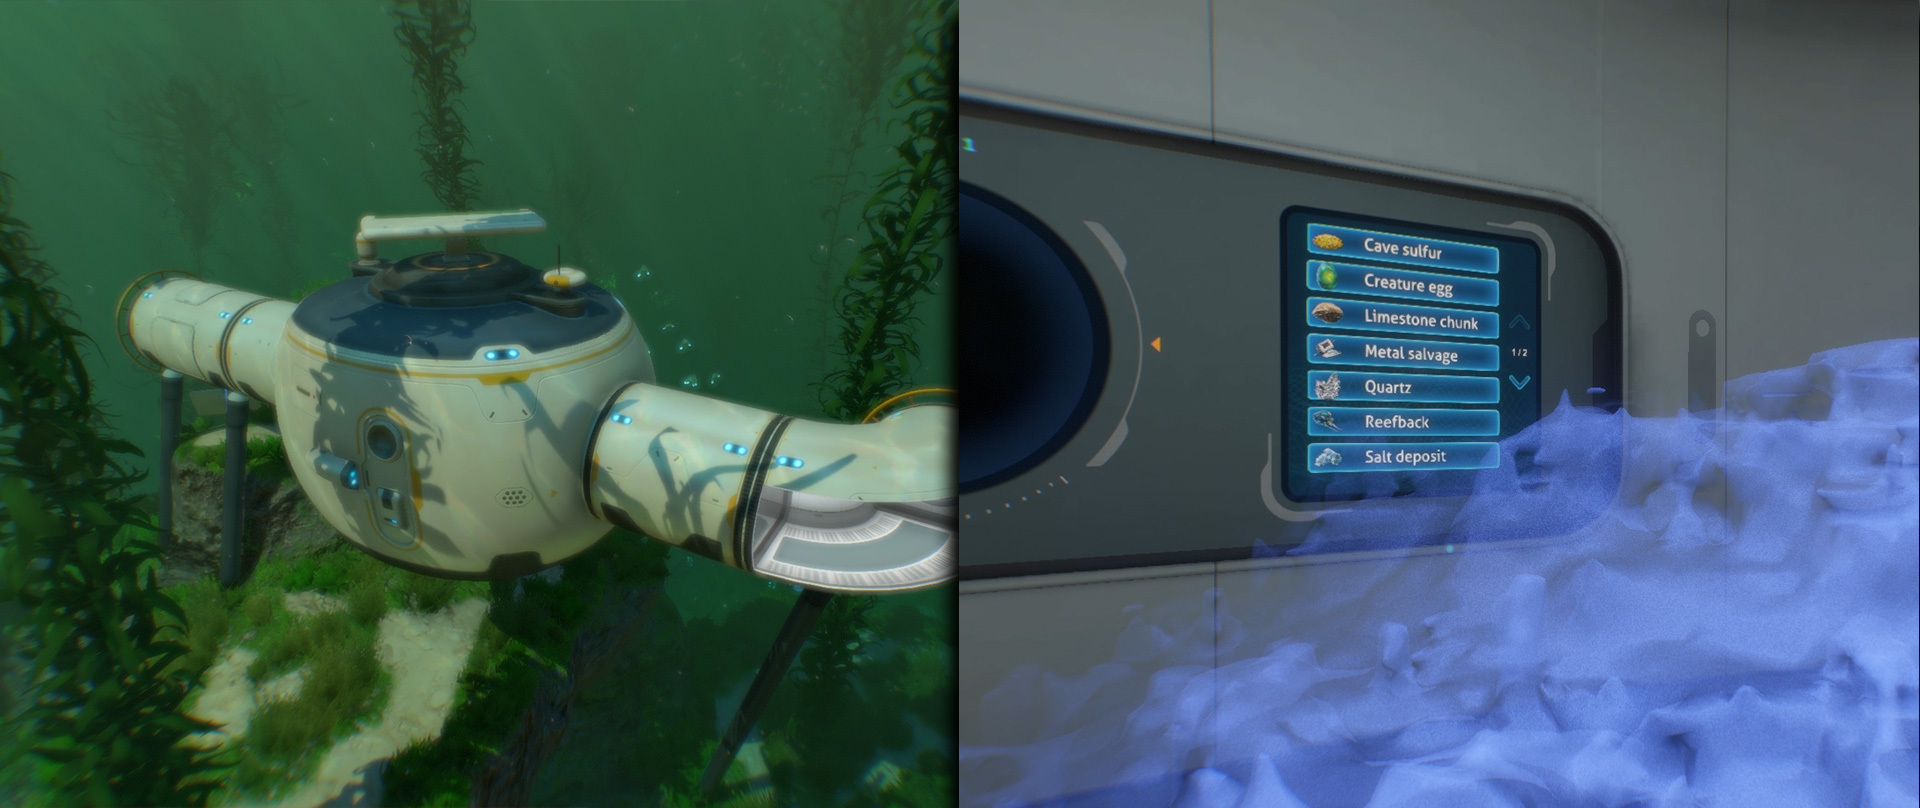 Subnautica Scanner Room Lithium – A quick vid showing off the new drone cameras from the scanner room in action to find resources.